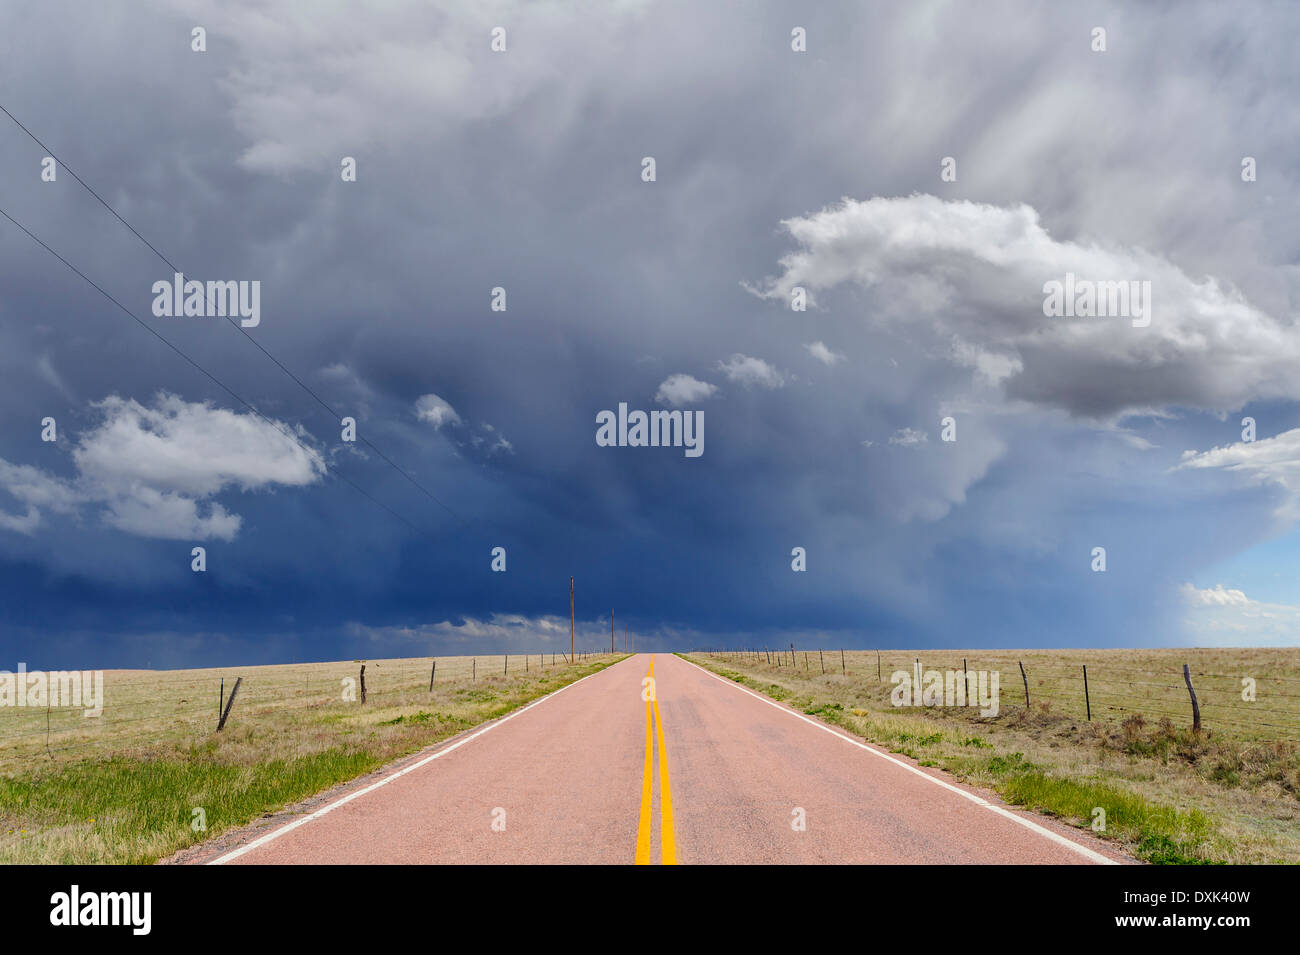 Storm clouds over open road, Rush, Colorado, United States Stock Photo